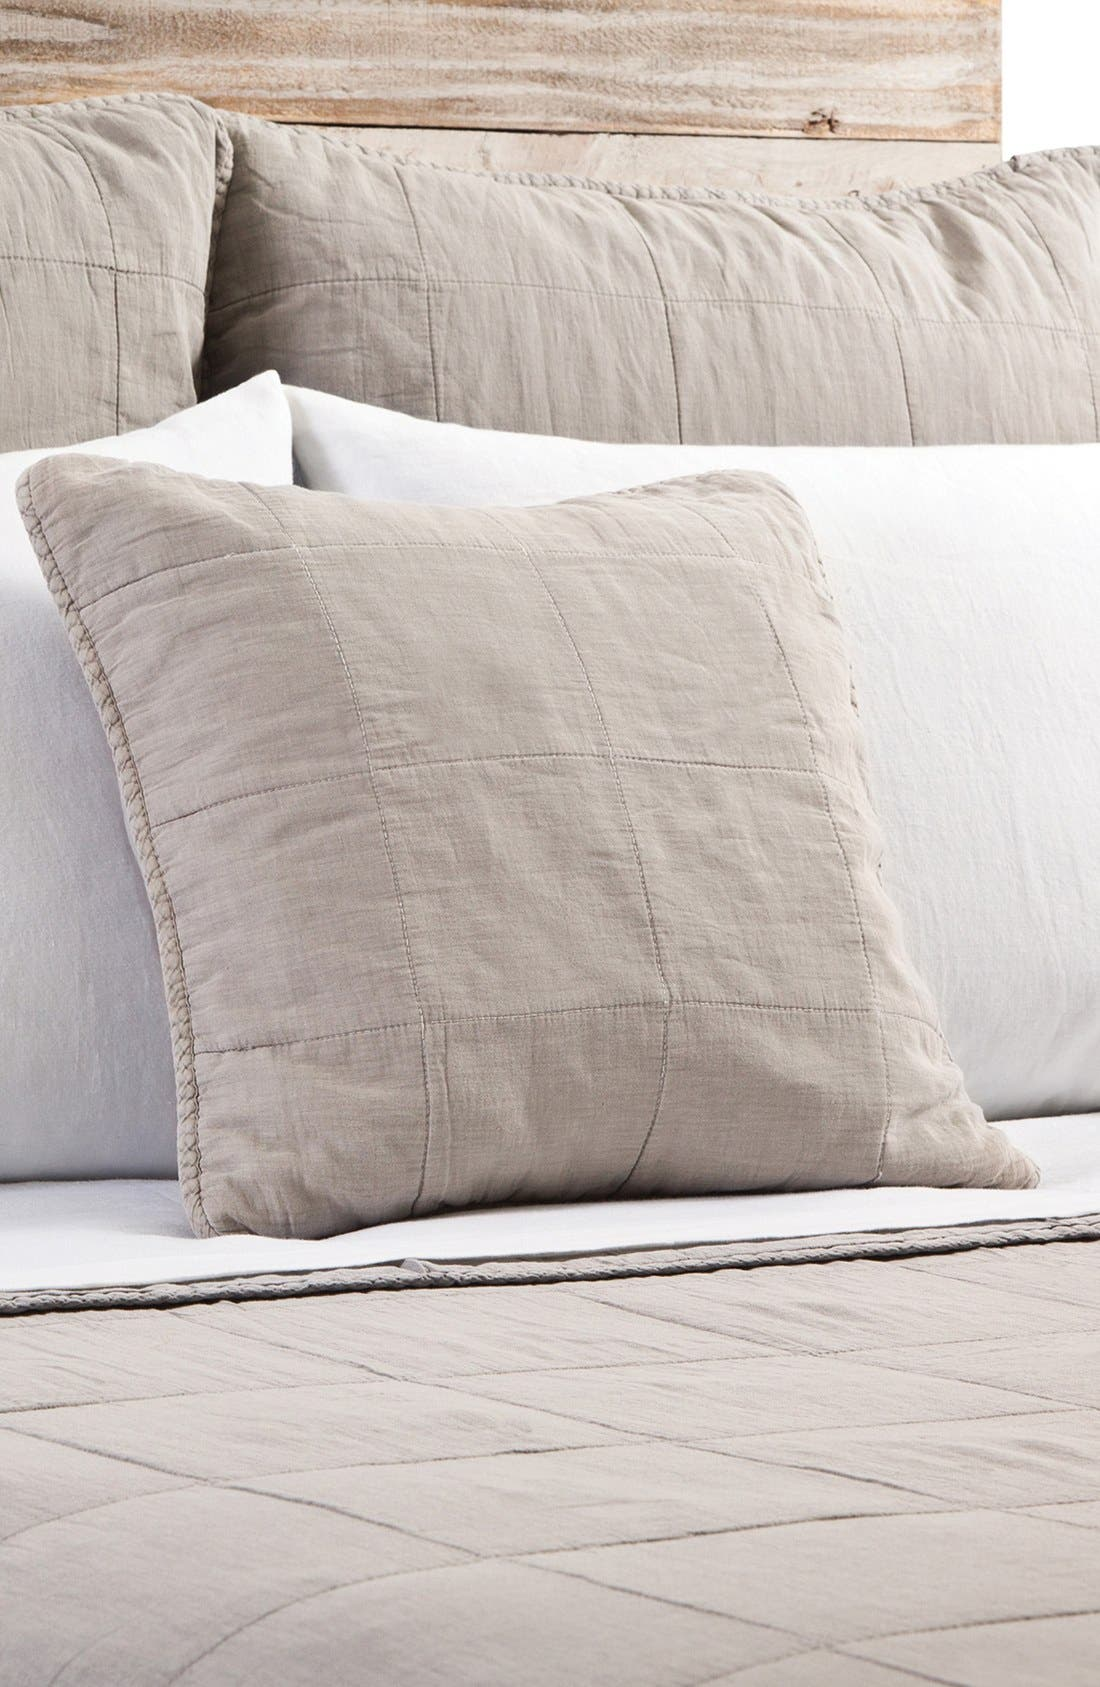 POM POM AT HOME,                             'Antwerp' Cotton Coverlet,                             Main thumbnail 1, color,                             NATURAL